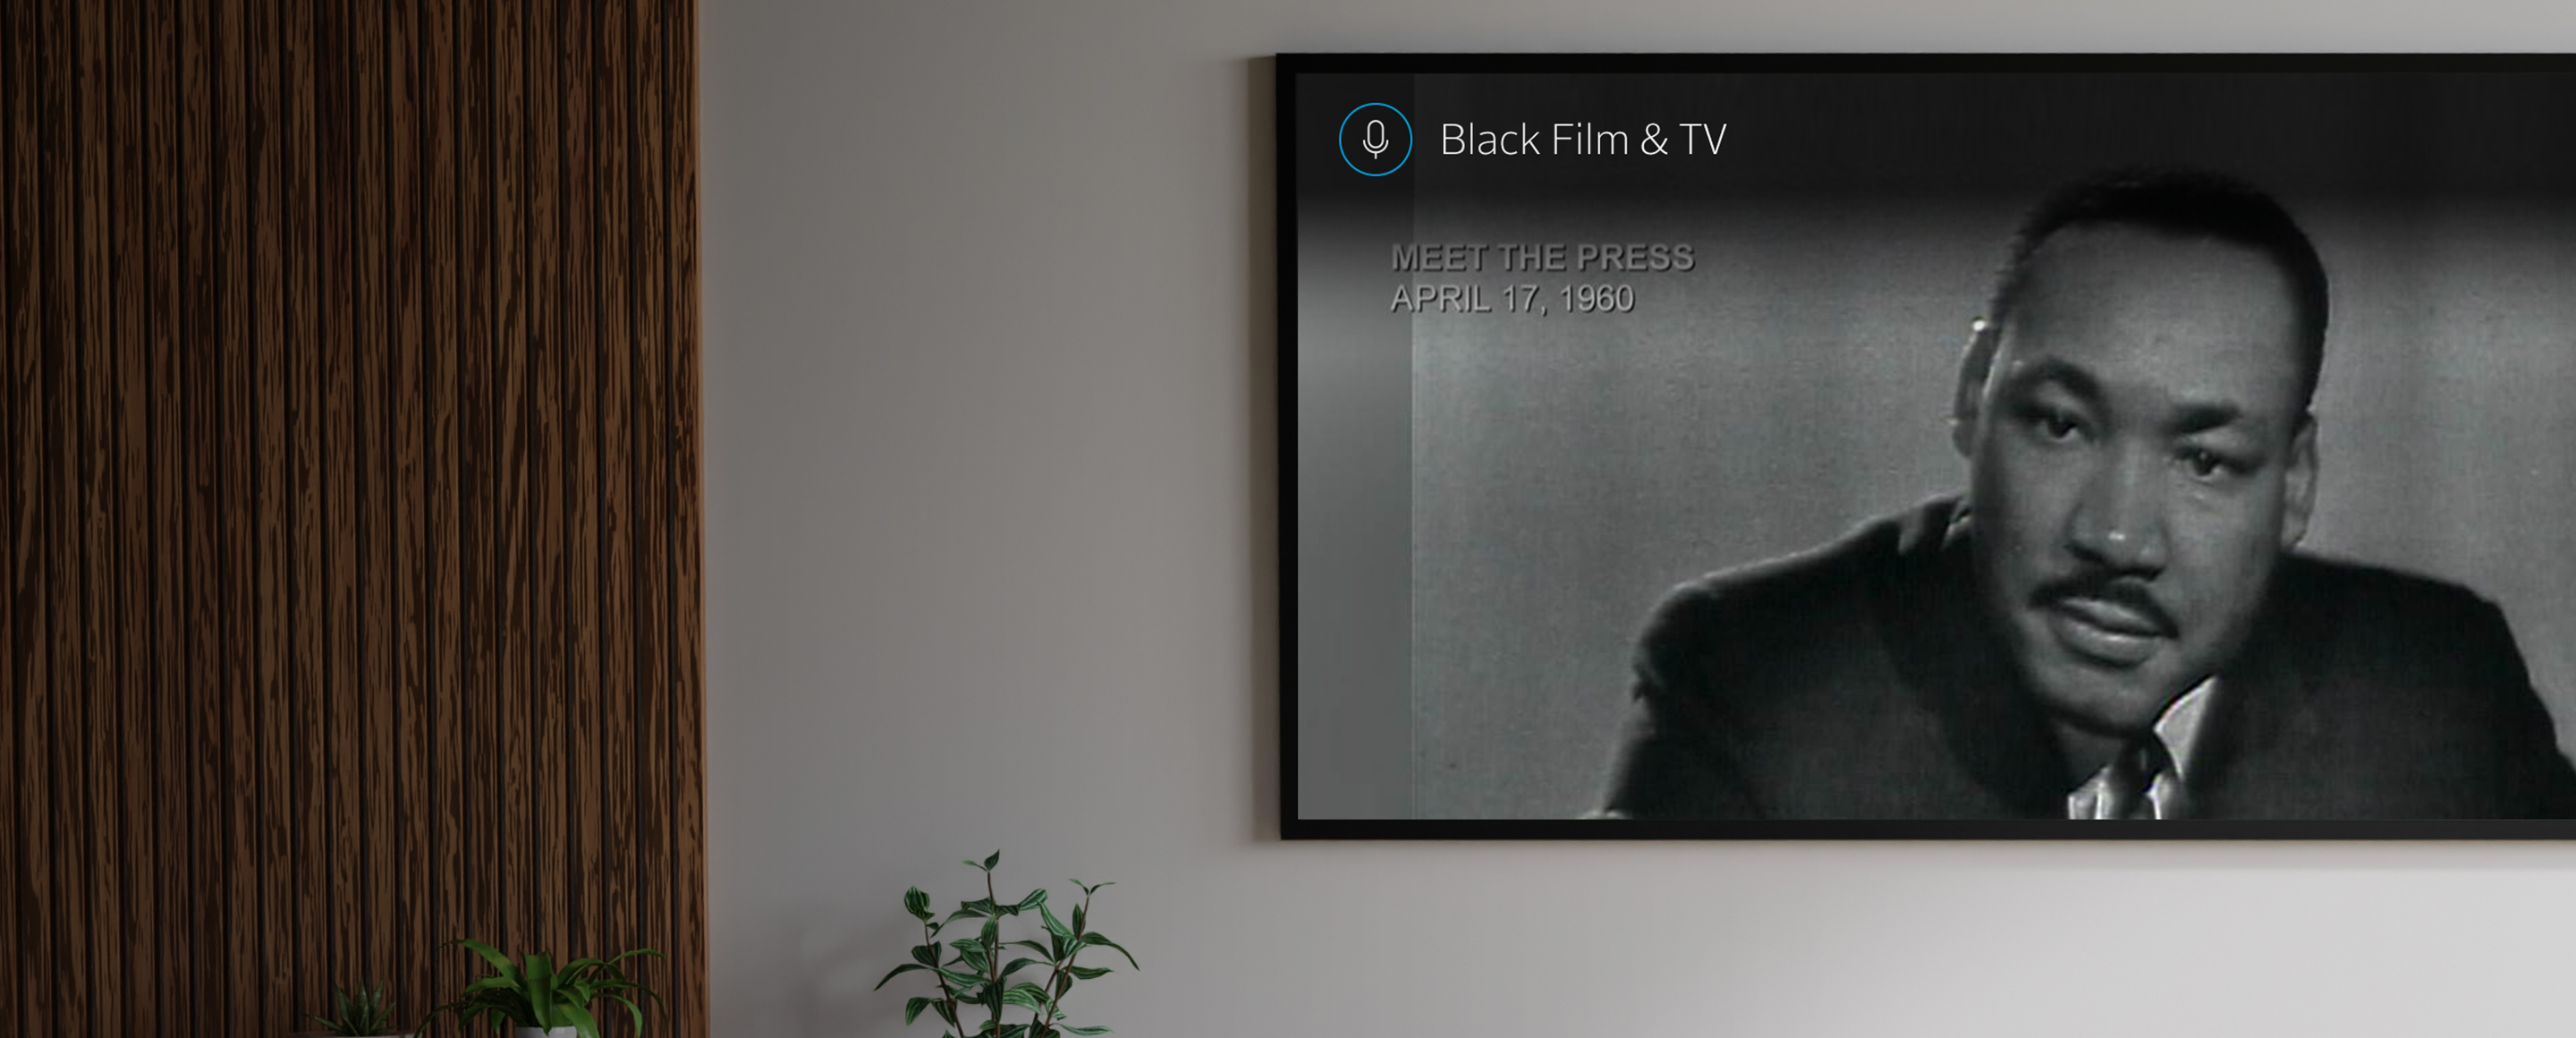 Television with Dr. Martin Luther King, Jr. on it